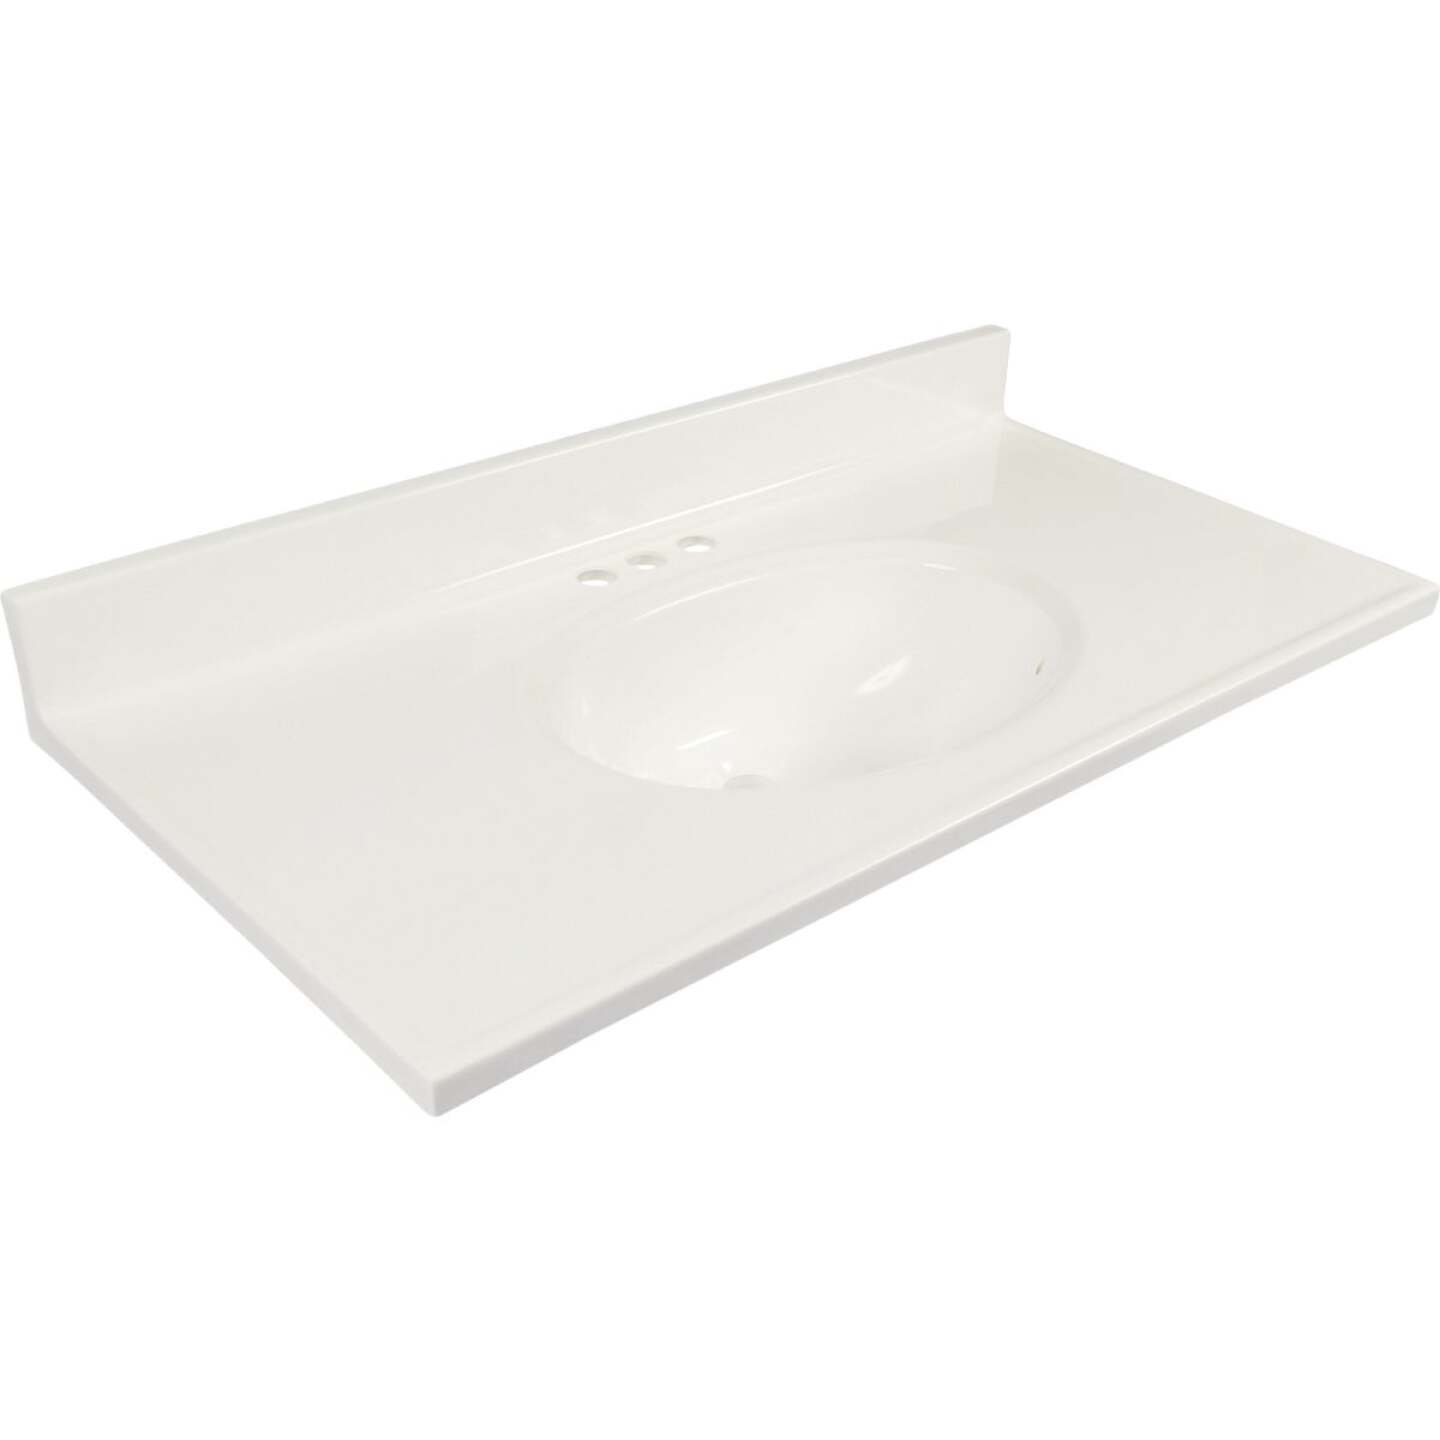 Modular Vanity Tops 37 In. W x 19 In. D Solid White Cultured Marble Vanity Top with Oval Bowl Image 1